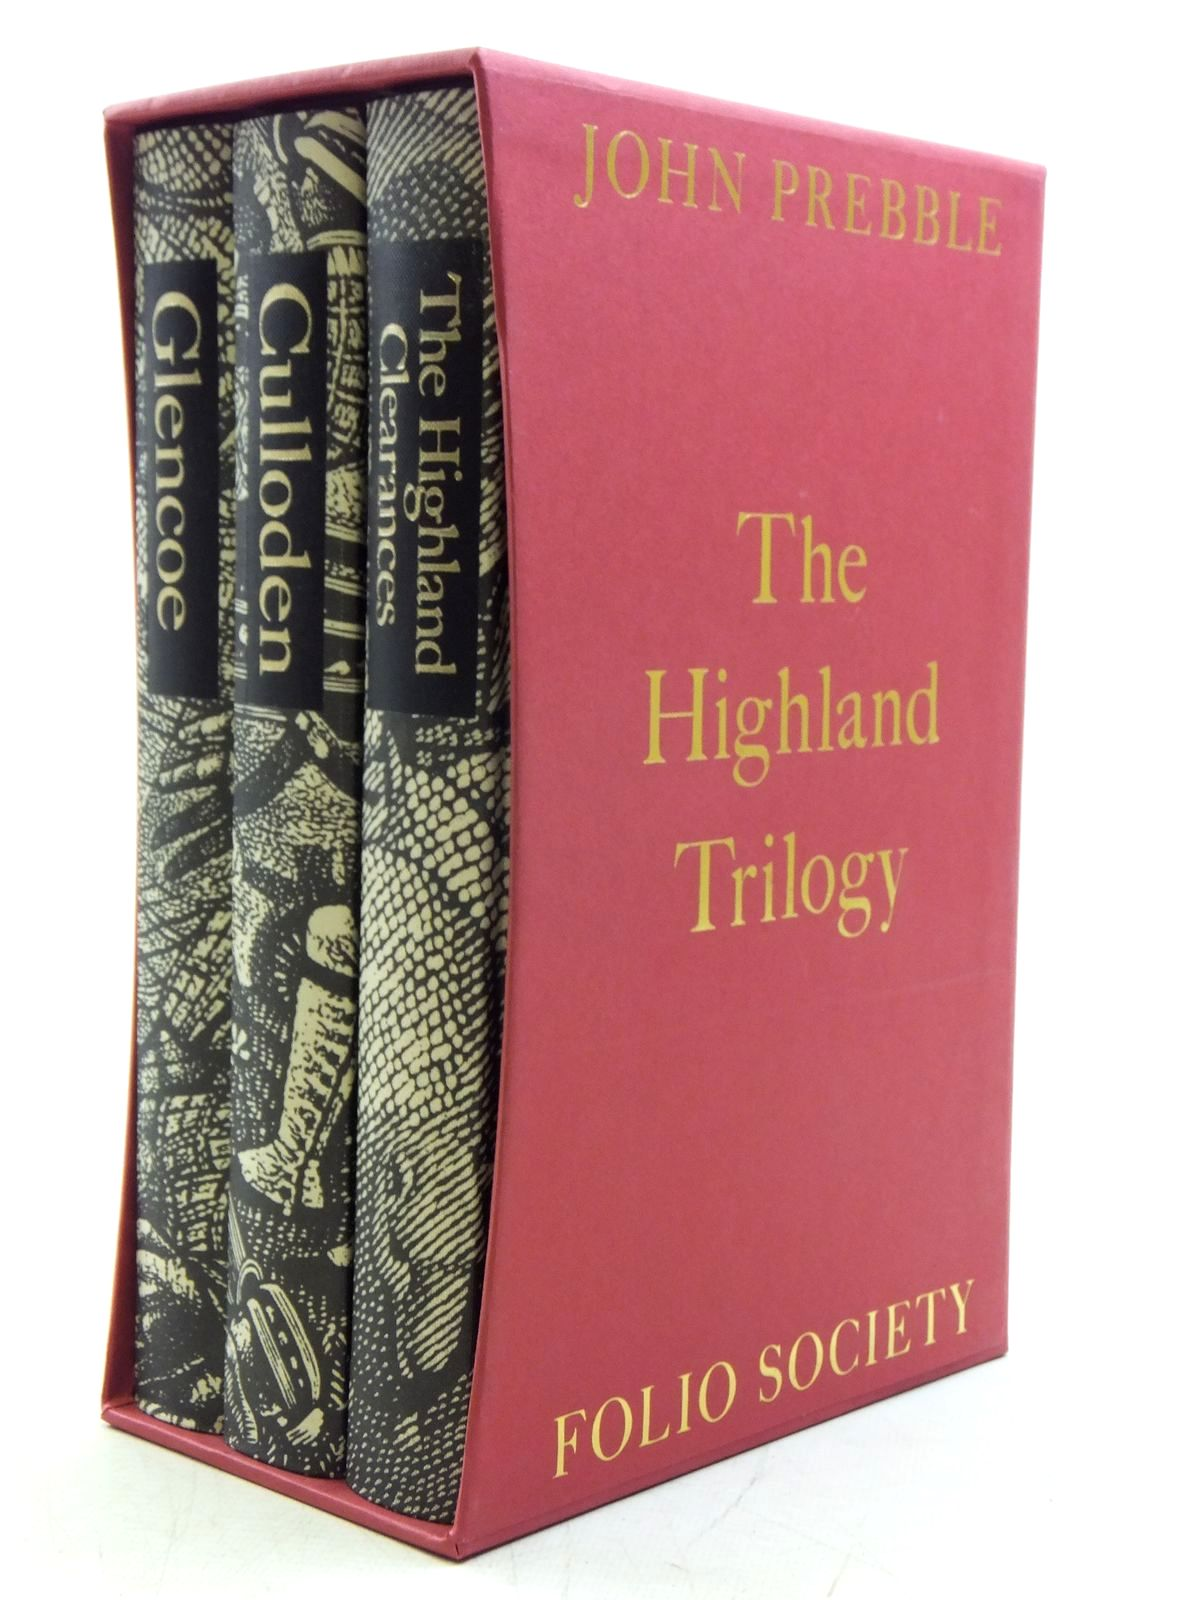 Photo of THE HIGHLAND TRILOGY written by Prebble, John illustrated by Brockway, Harry published by Folio Society (STOCK CODE: 2120535)  for sale by Stella & Rose's Books